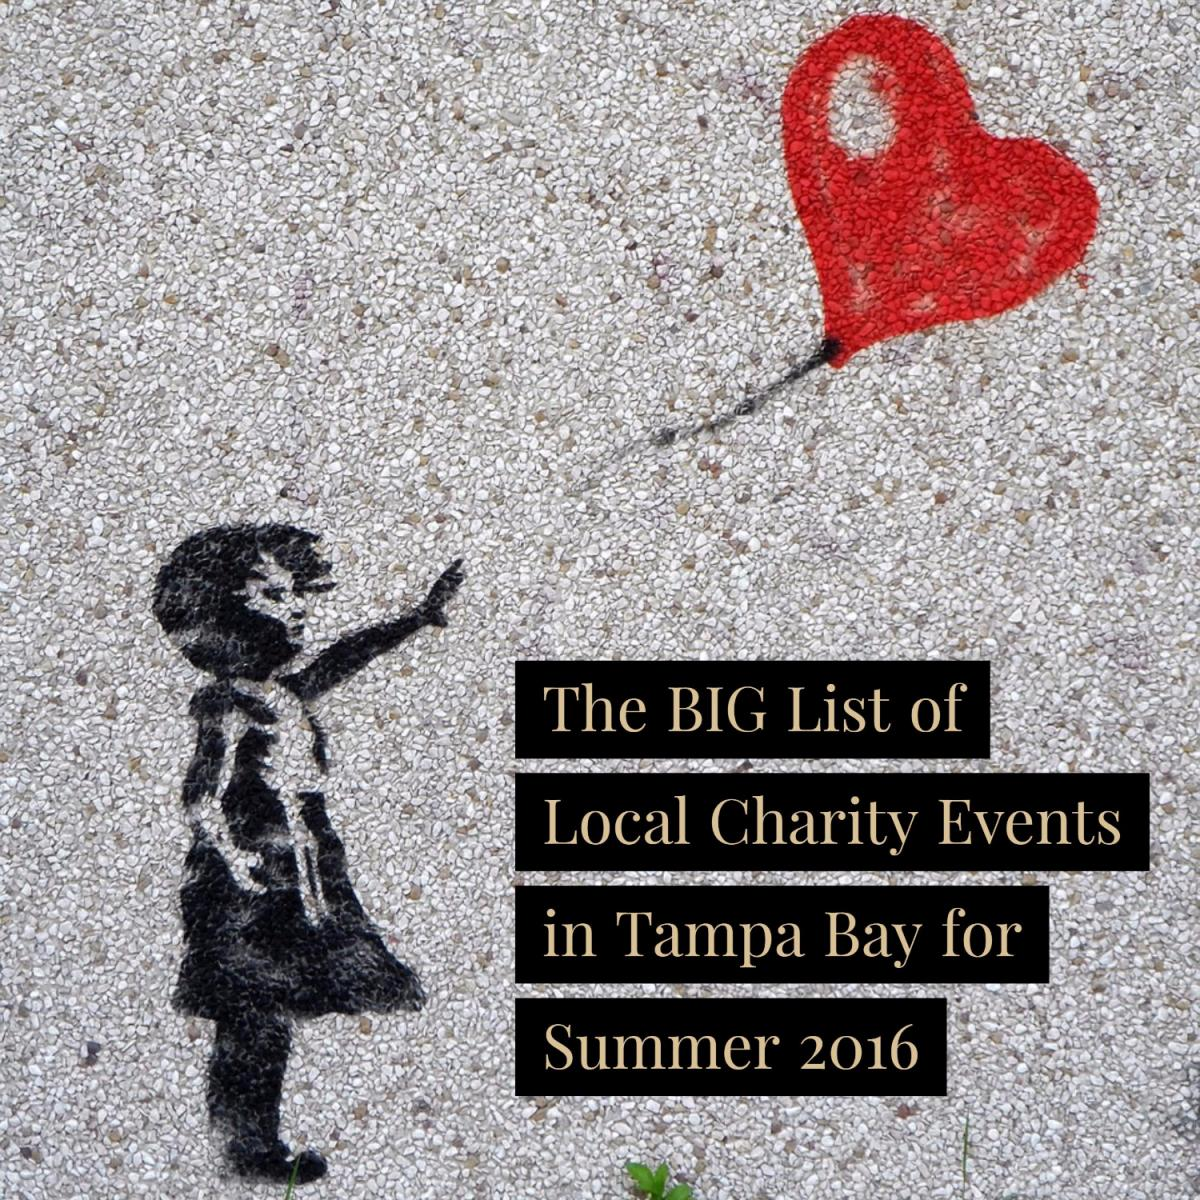 The BIG List of Local Charity Events in Tampa for Summer 2016